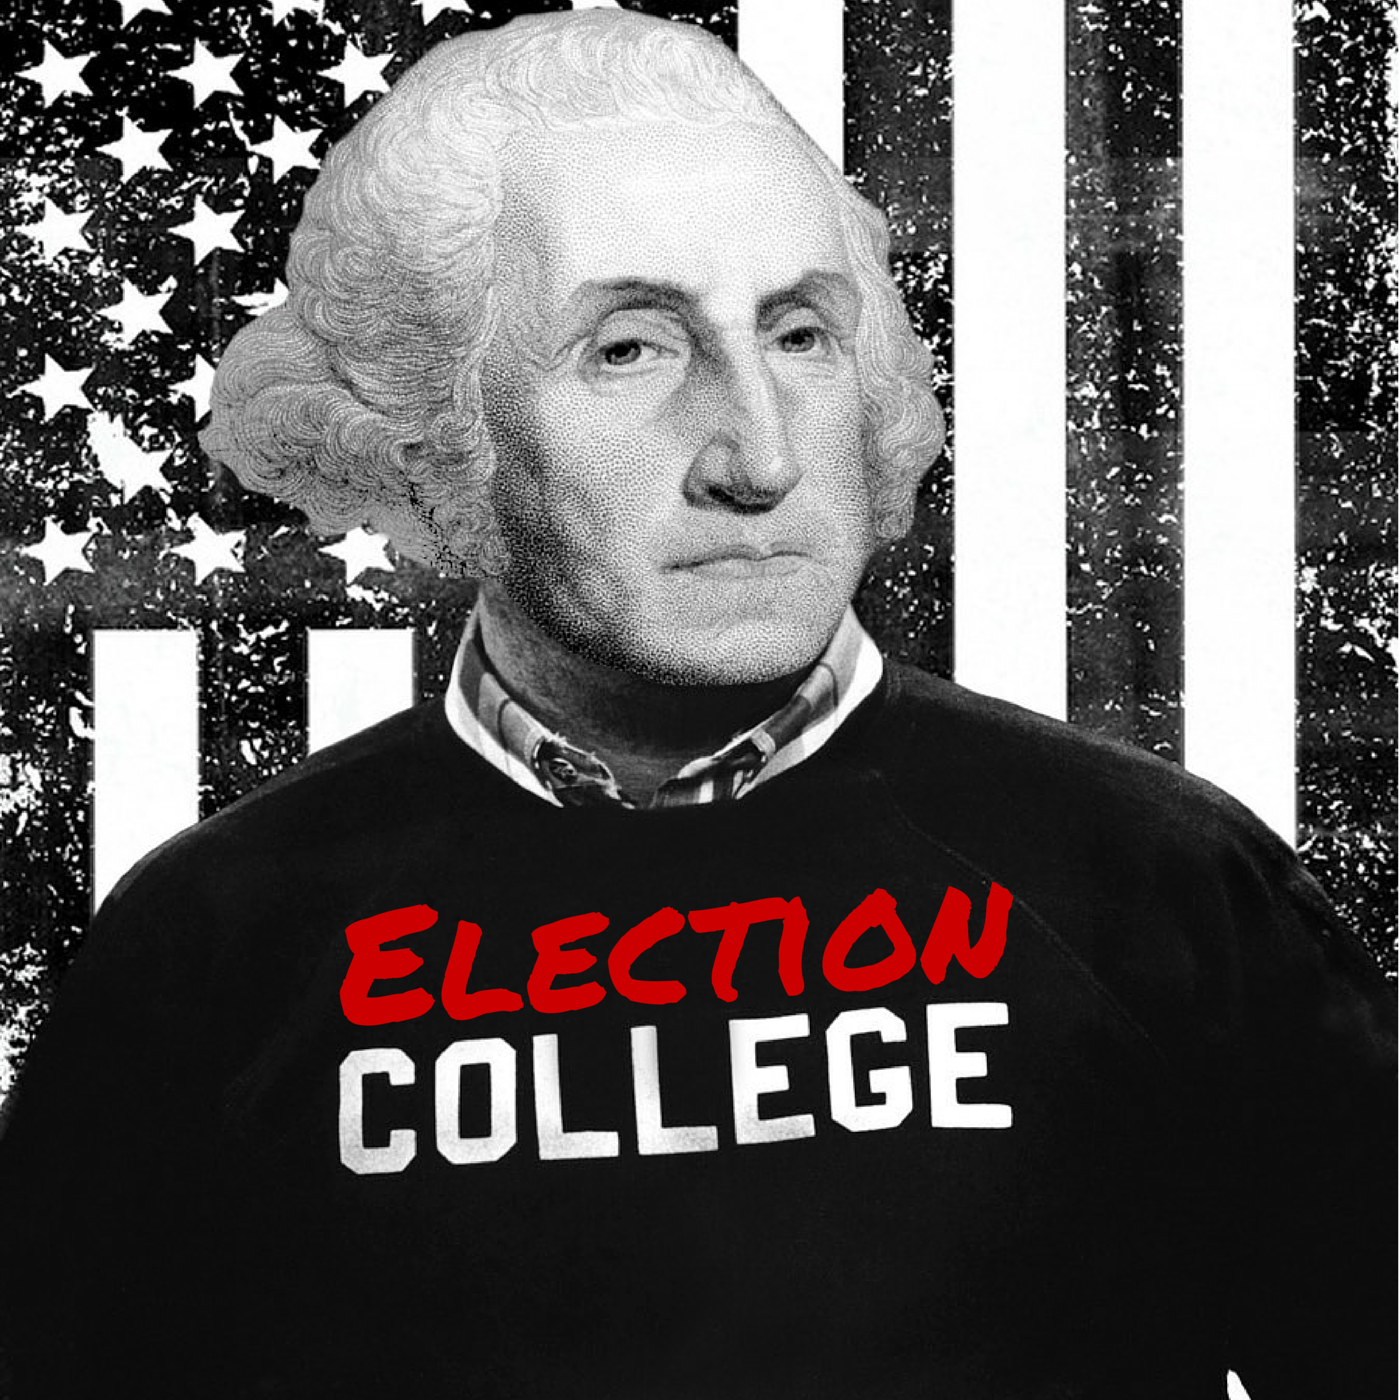 Rebroadcast: The Secession Episode | Episode #027 | Election College: United States Presidential Election History